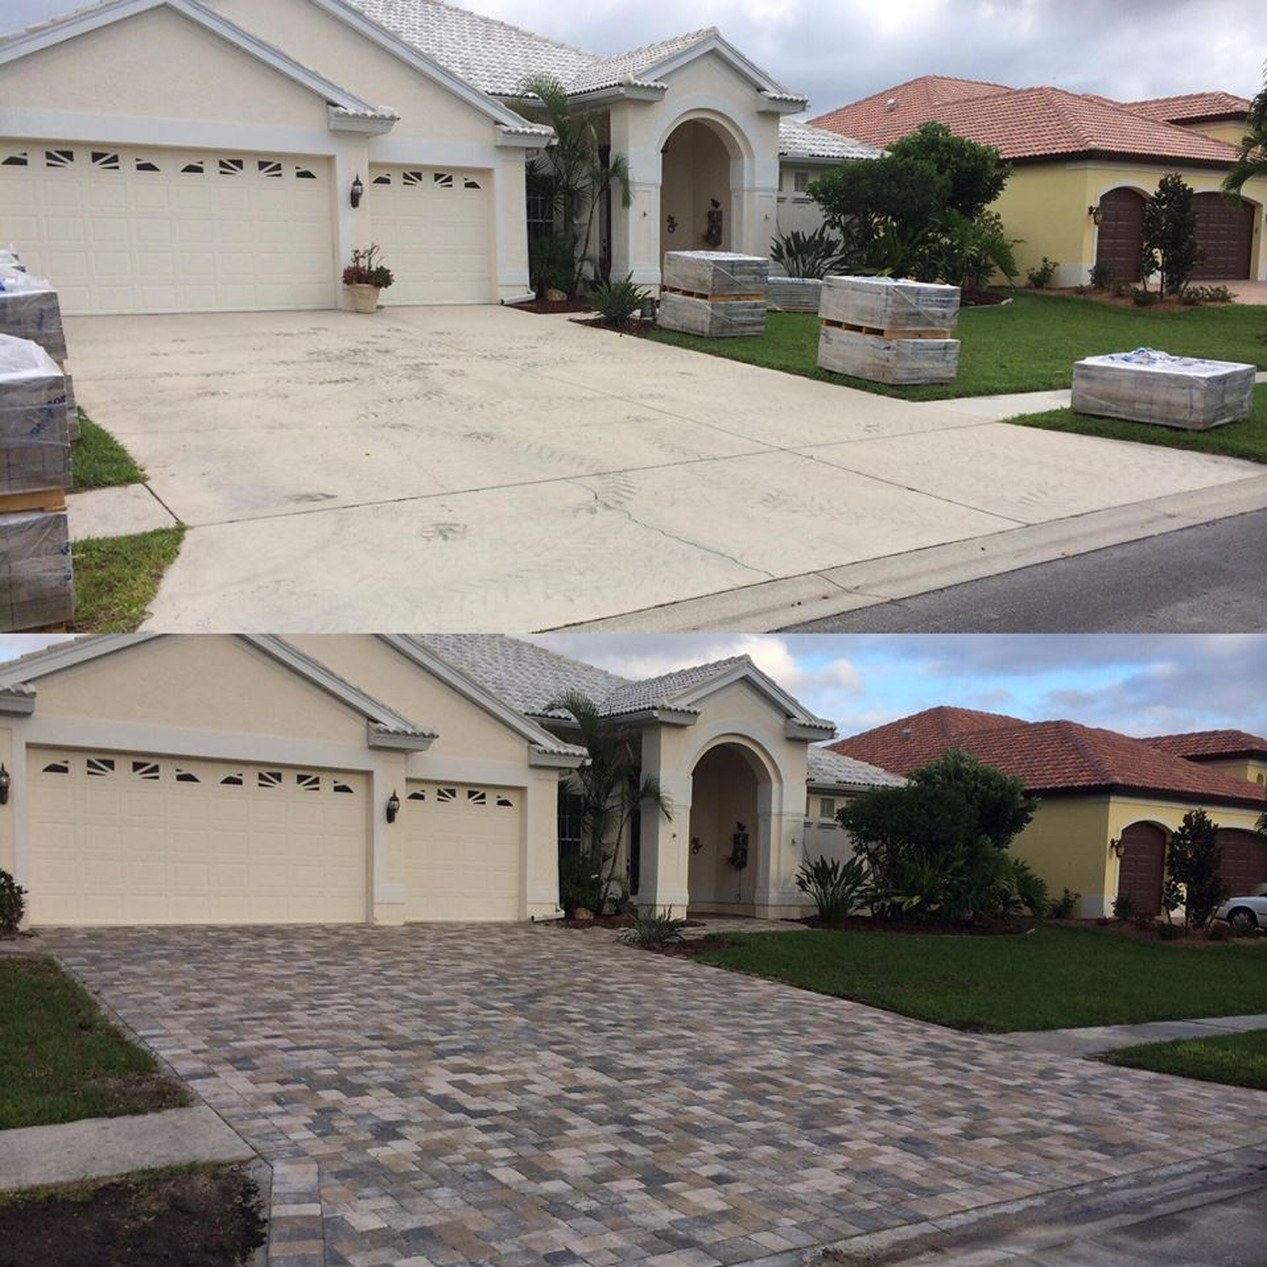 Driveways & Concrete Floors | Phenix Concrete and Borders